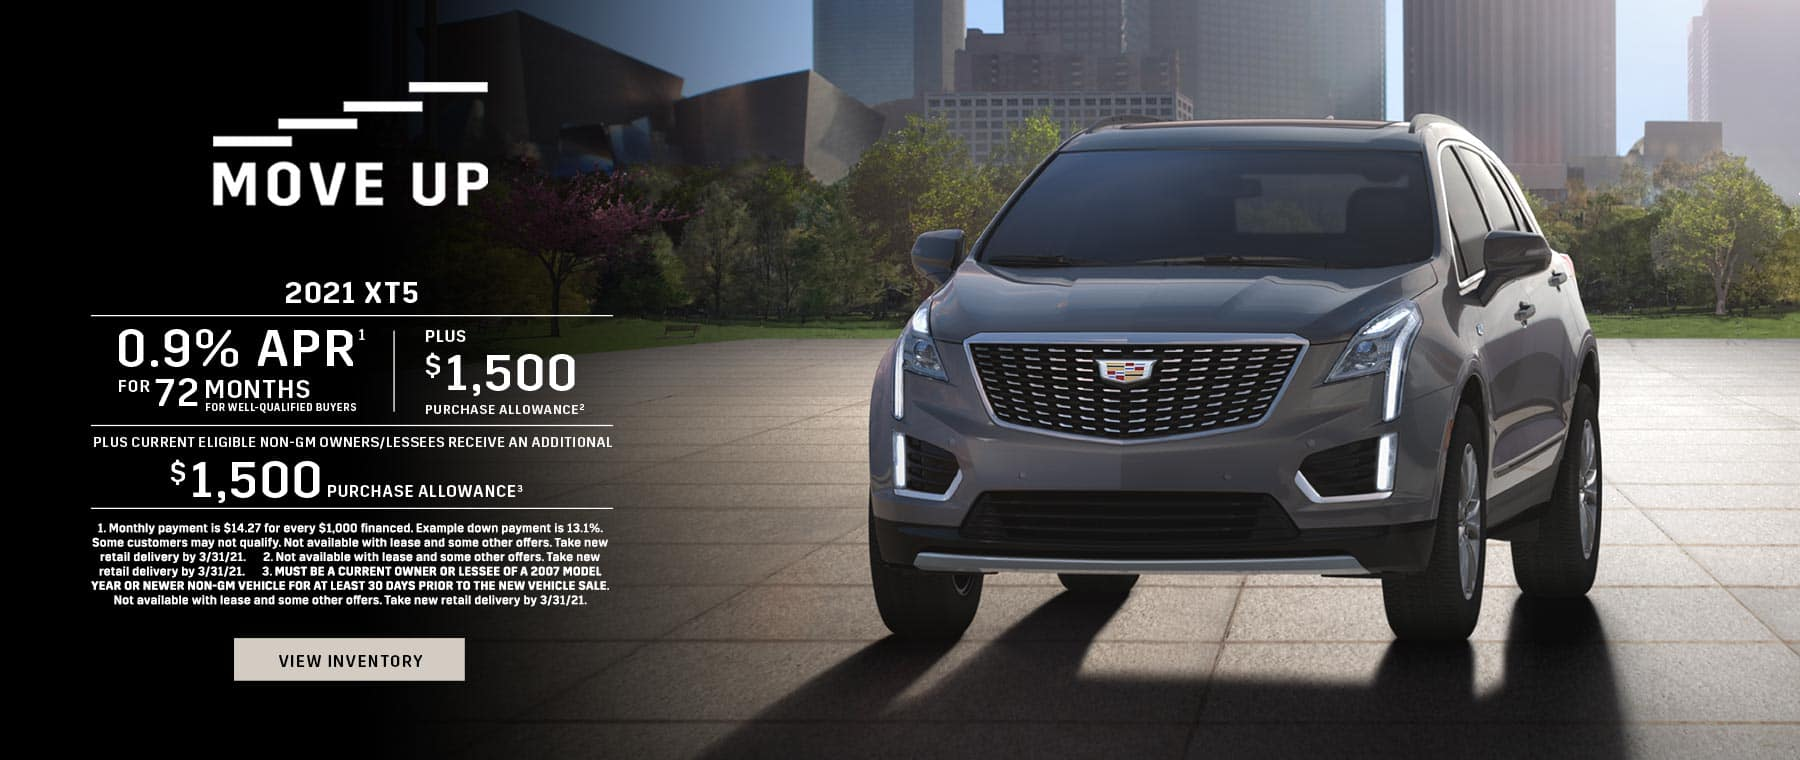 2021 Cadillac XT5 0.9% APR for 72 + $1,500 + $1,500